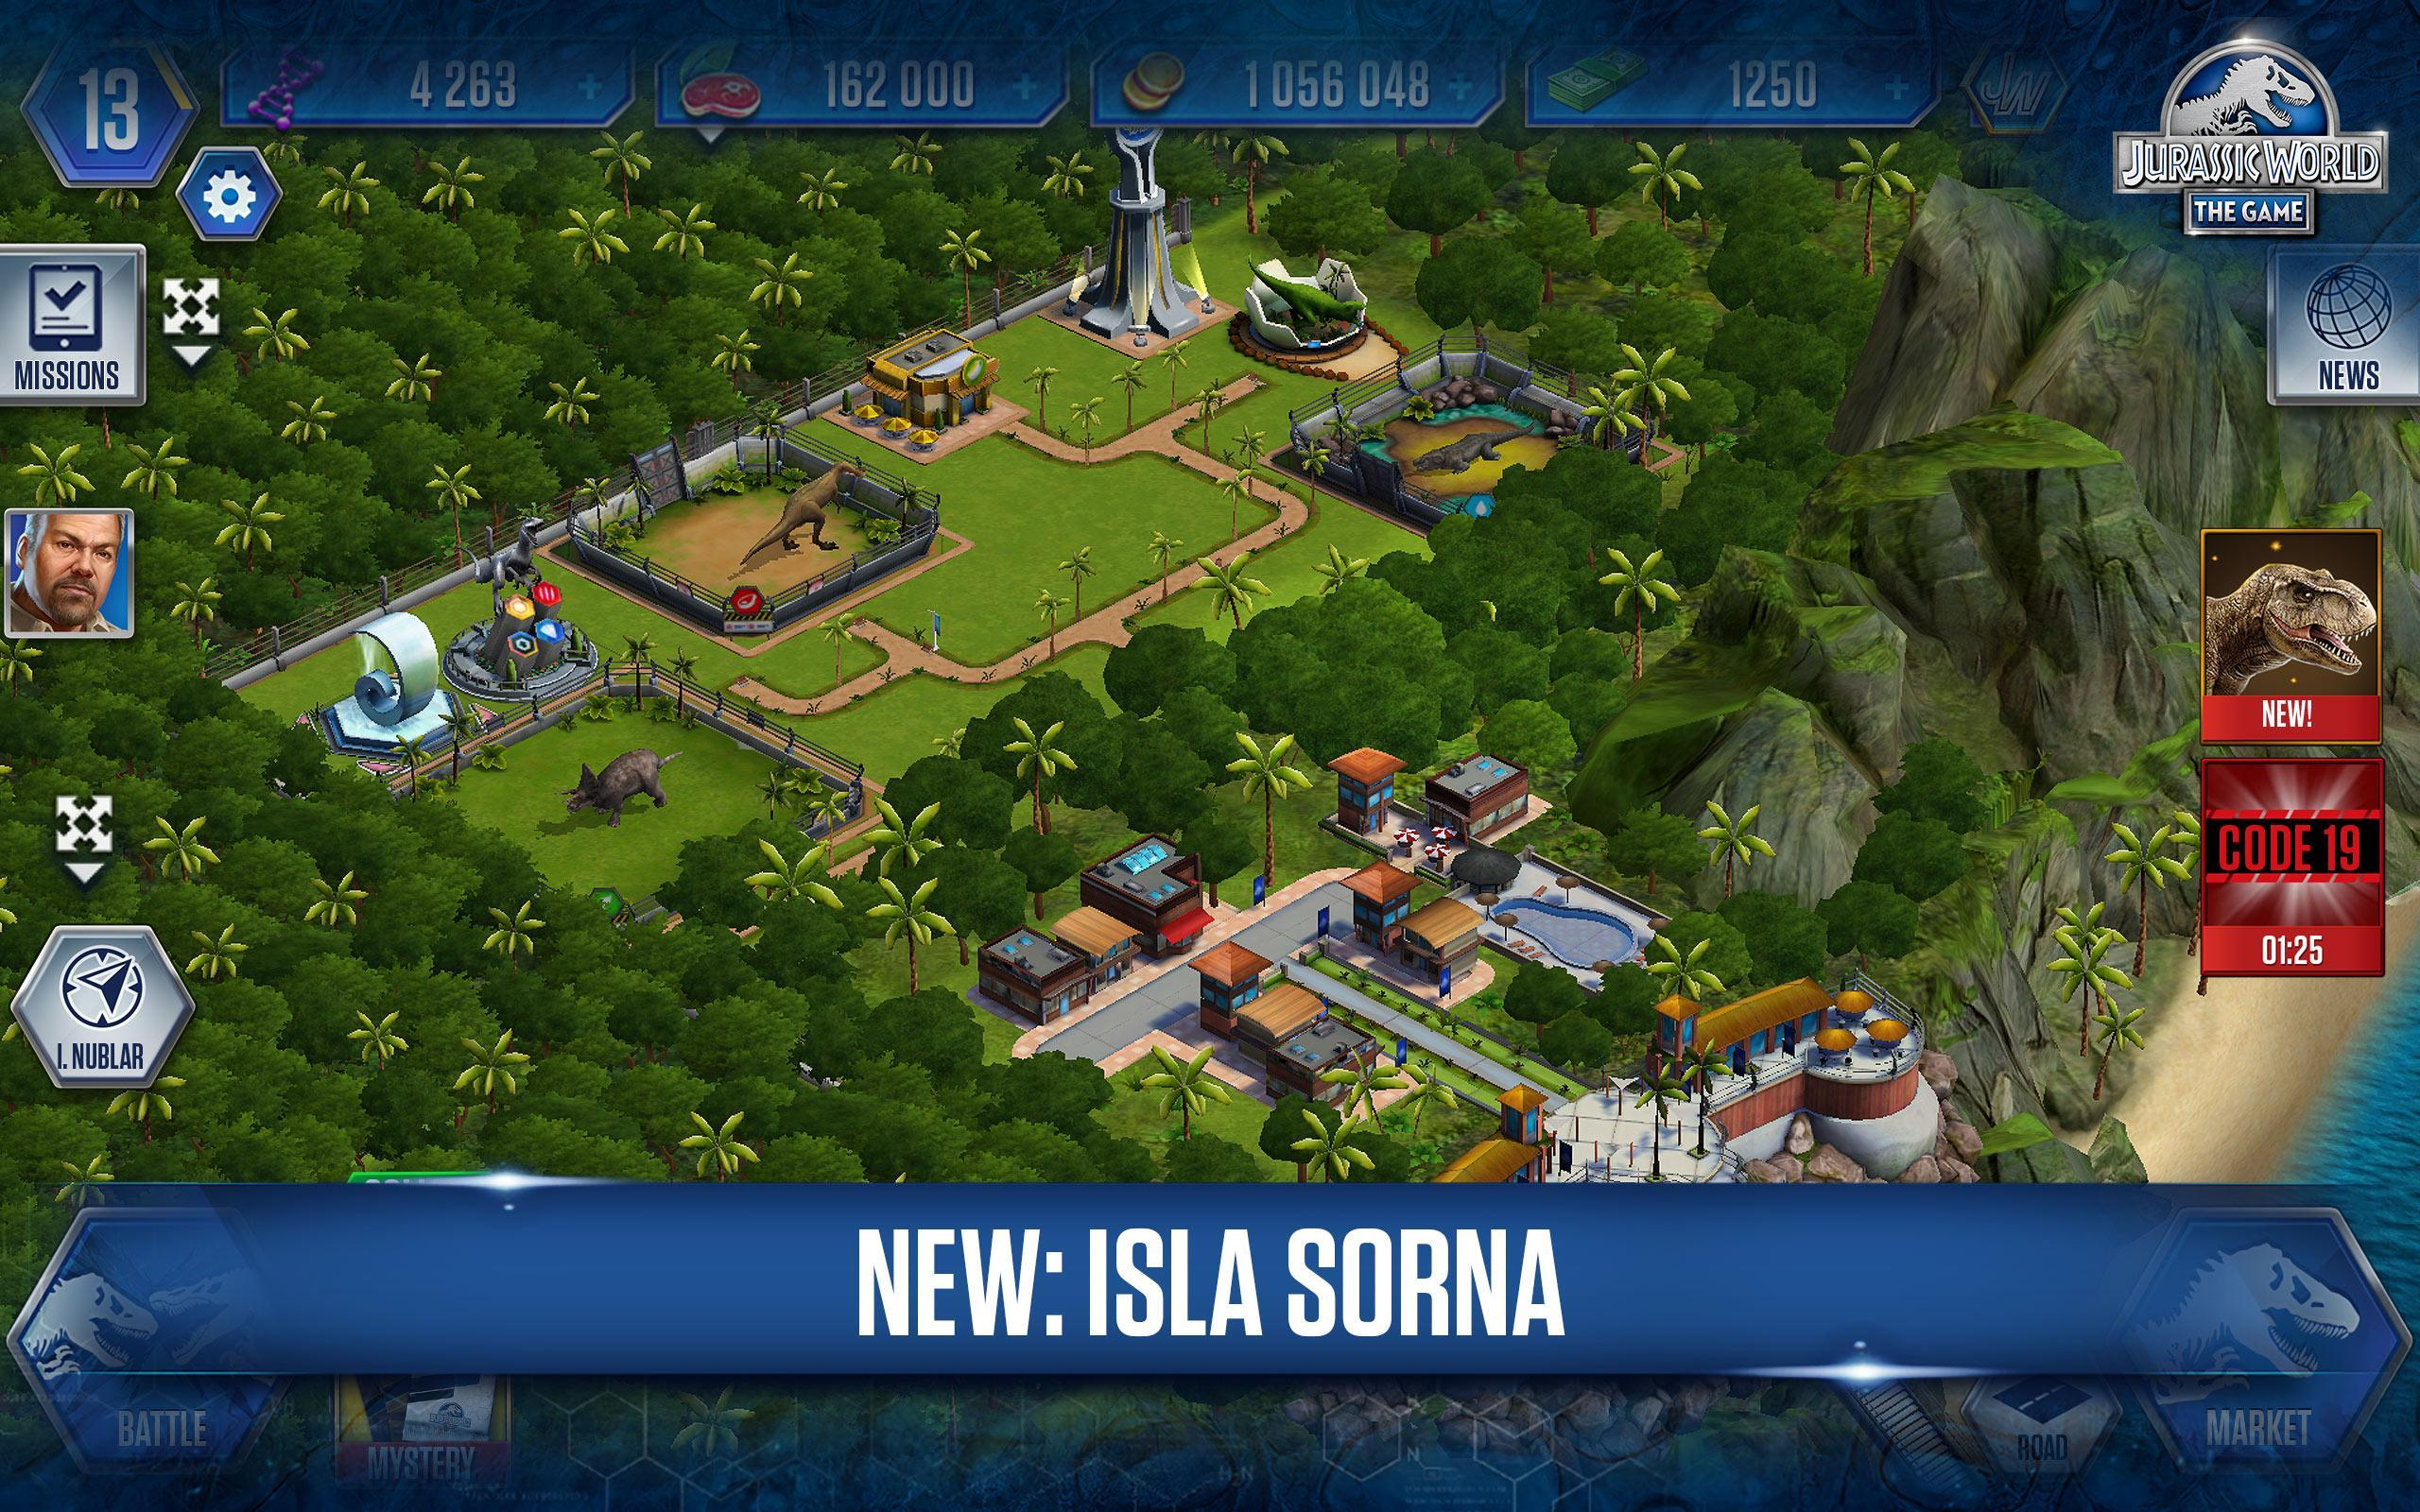 Jurassic World™: The Game for Android - APK Download